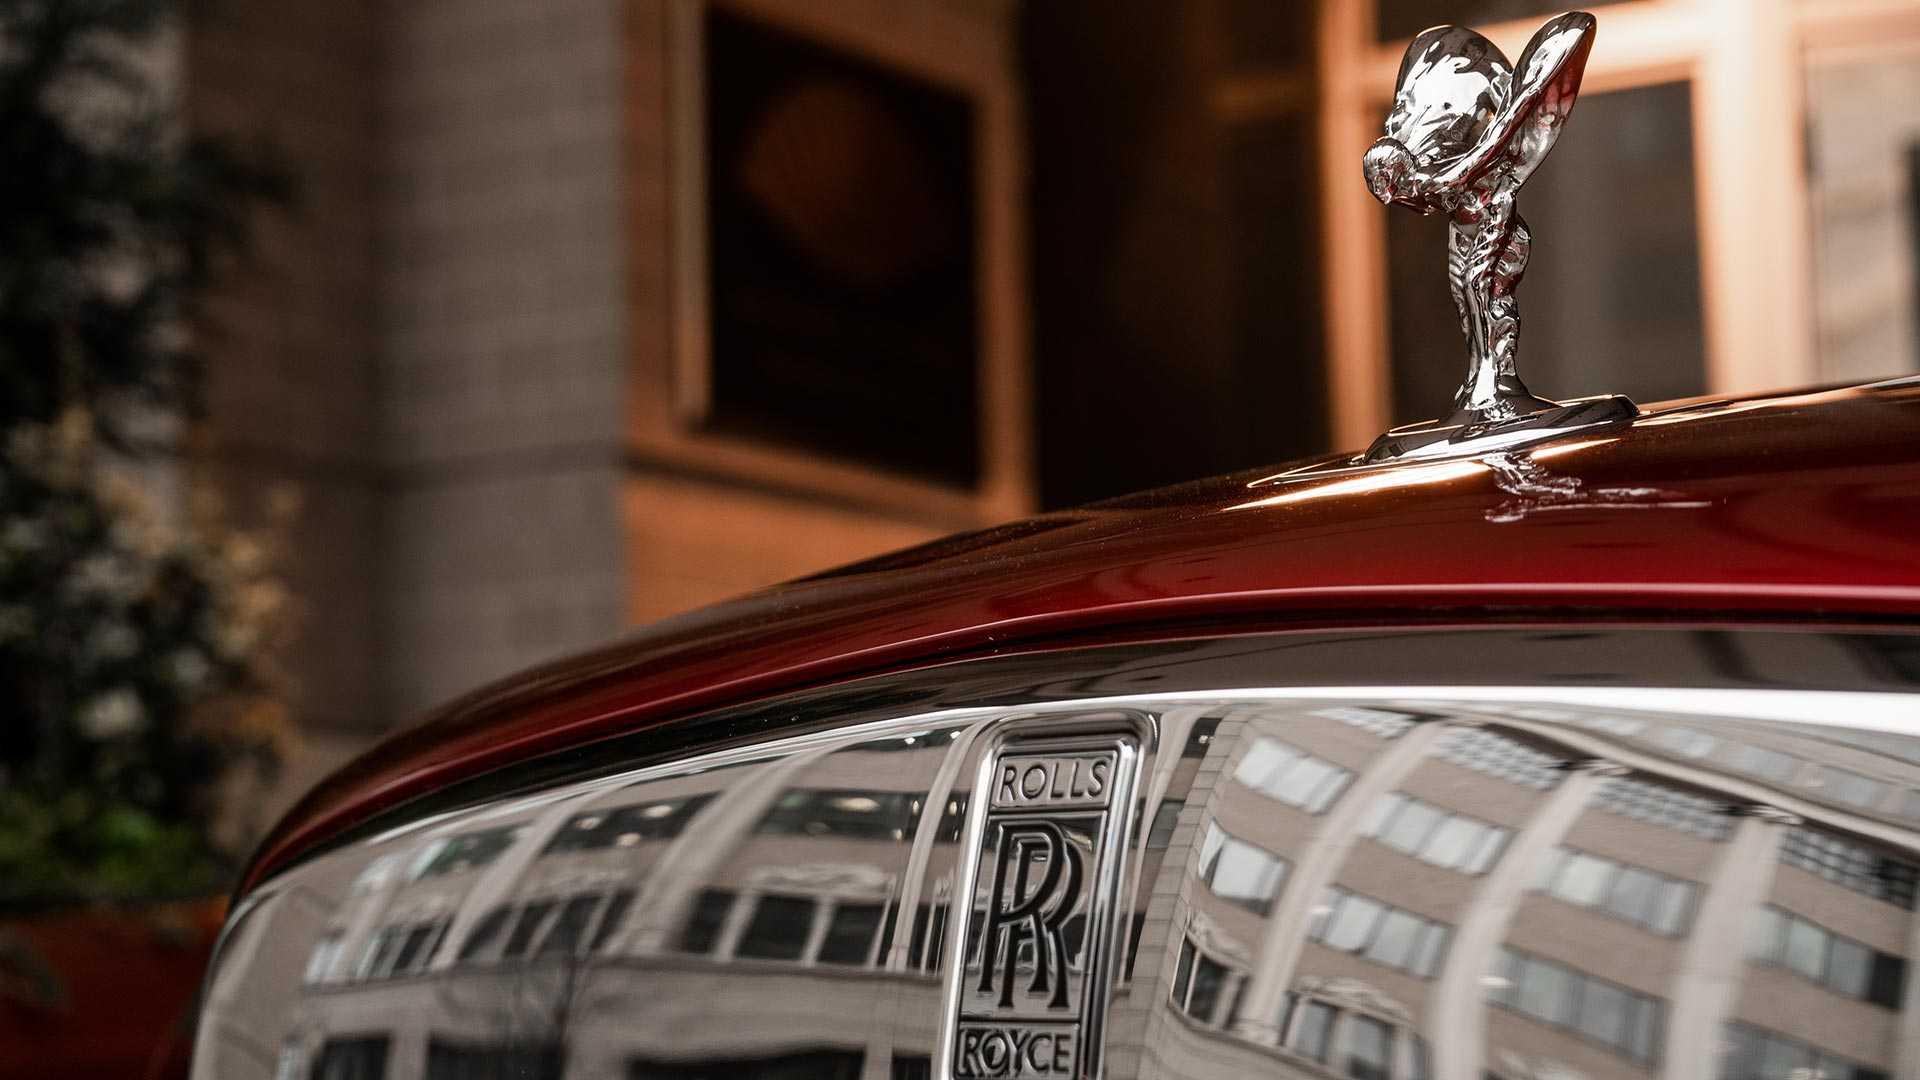 rolls-royce-year-of-the-pig-6.jpg